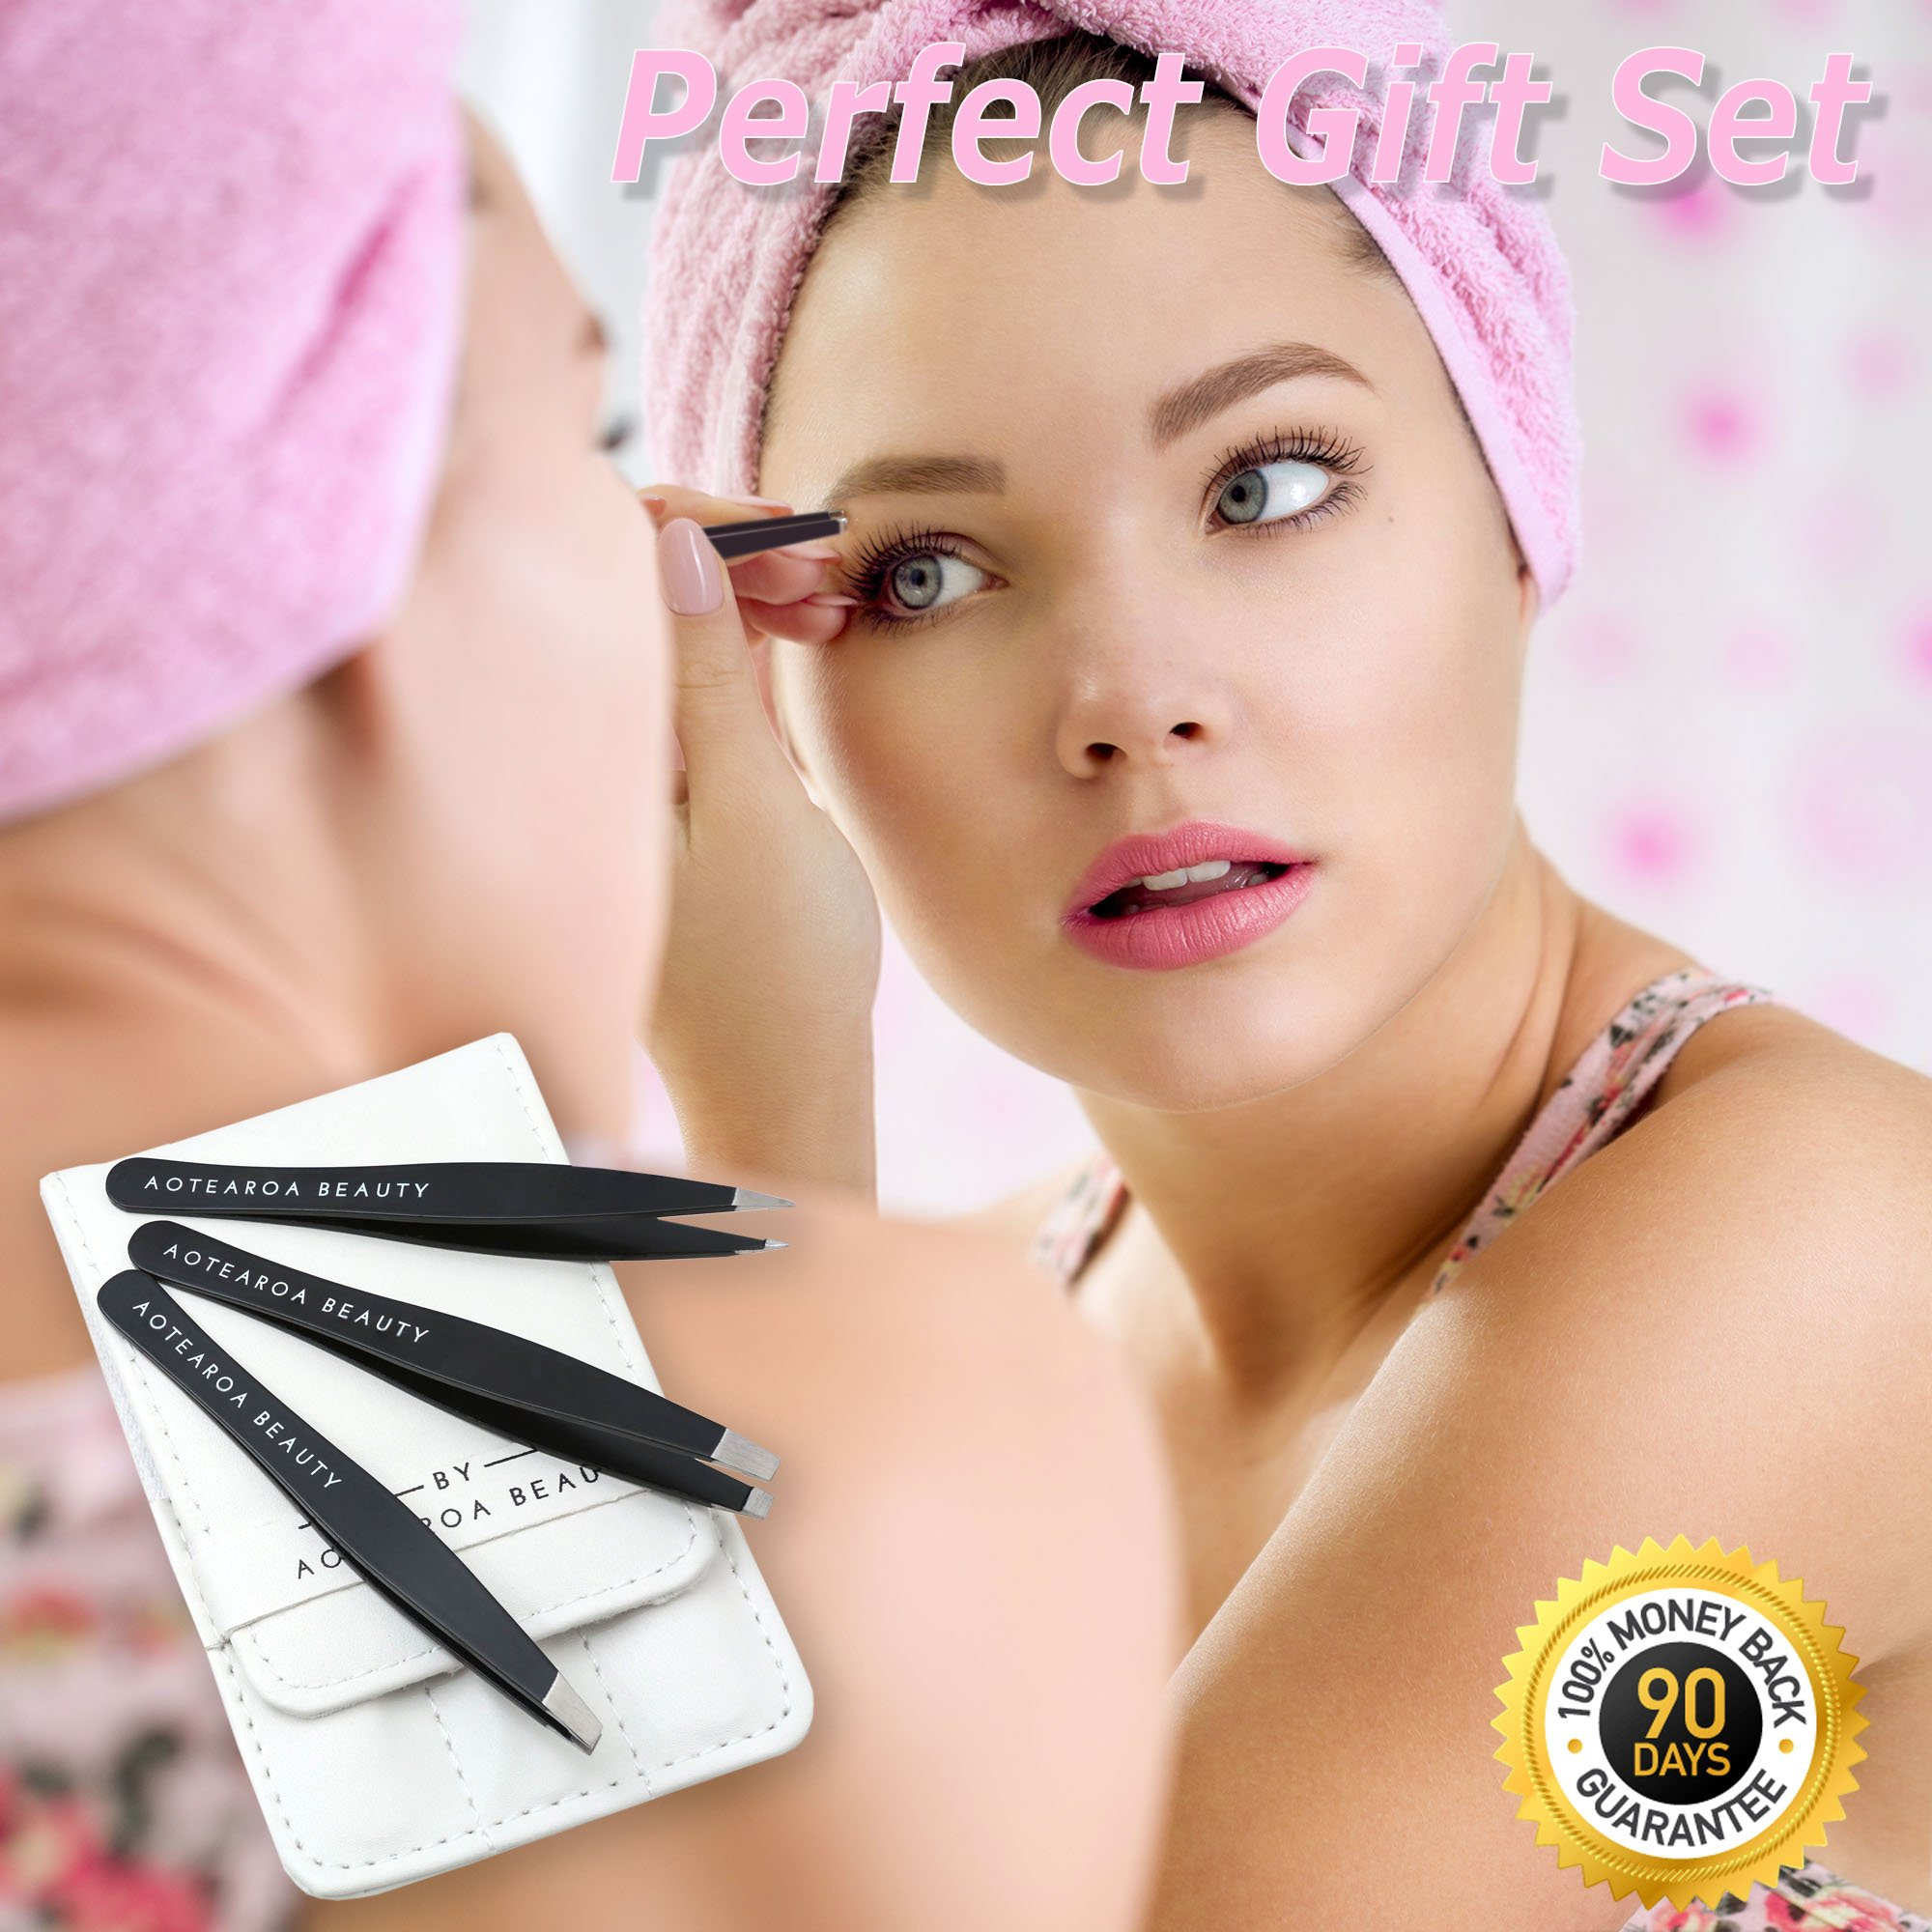 Tweezers for Eyebrows Set Of Three- Includes Case With Professional Pointed Needle Nose, Slant & Straight Precision Stainless Steel- Ingrown Hair Nose, Hair Eyebrow & Splinters